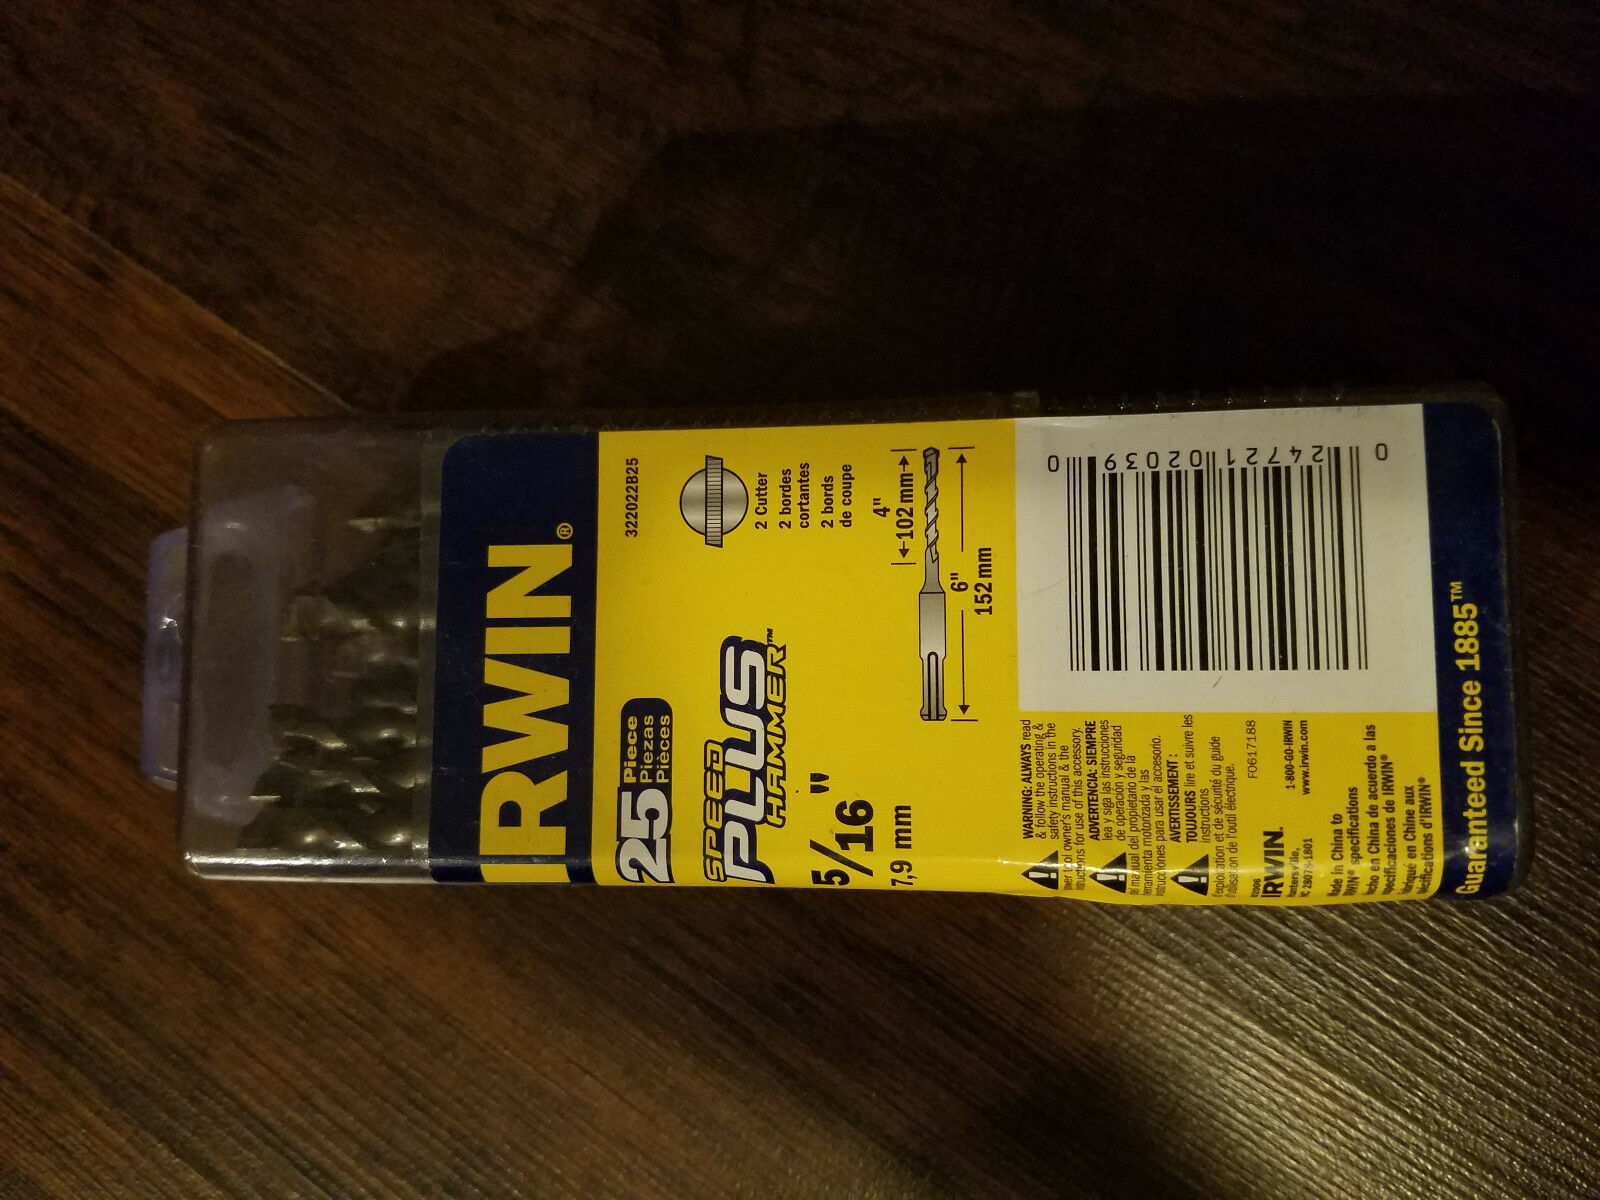 IRWIN SDS-PLUS Concrete 5/16 x 4 x 6  Speed Plus Hammer Drill Bit 25pcs.